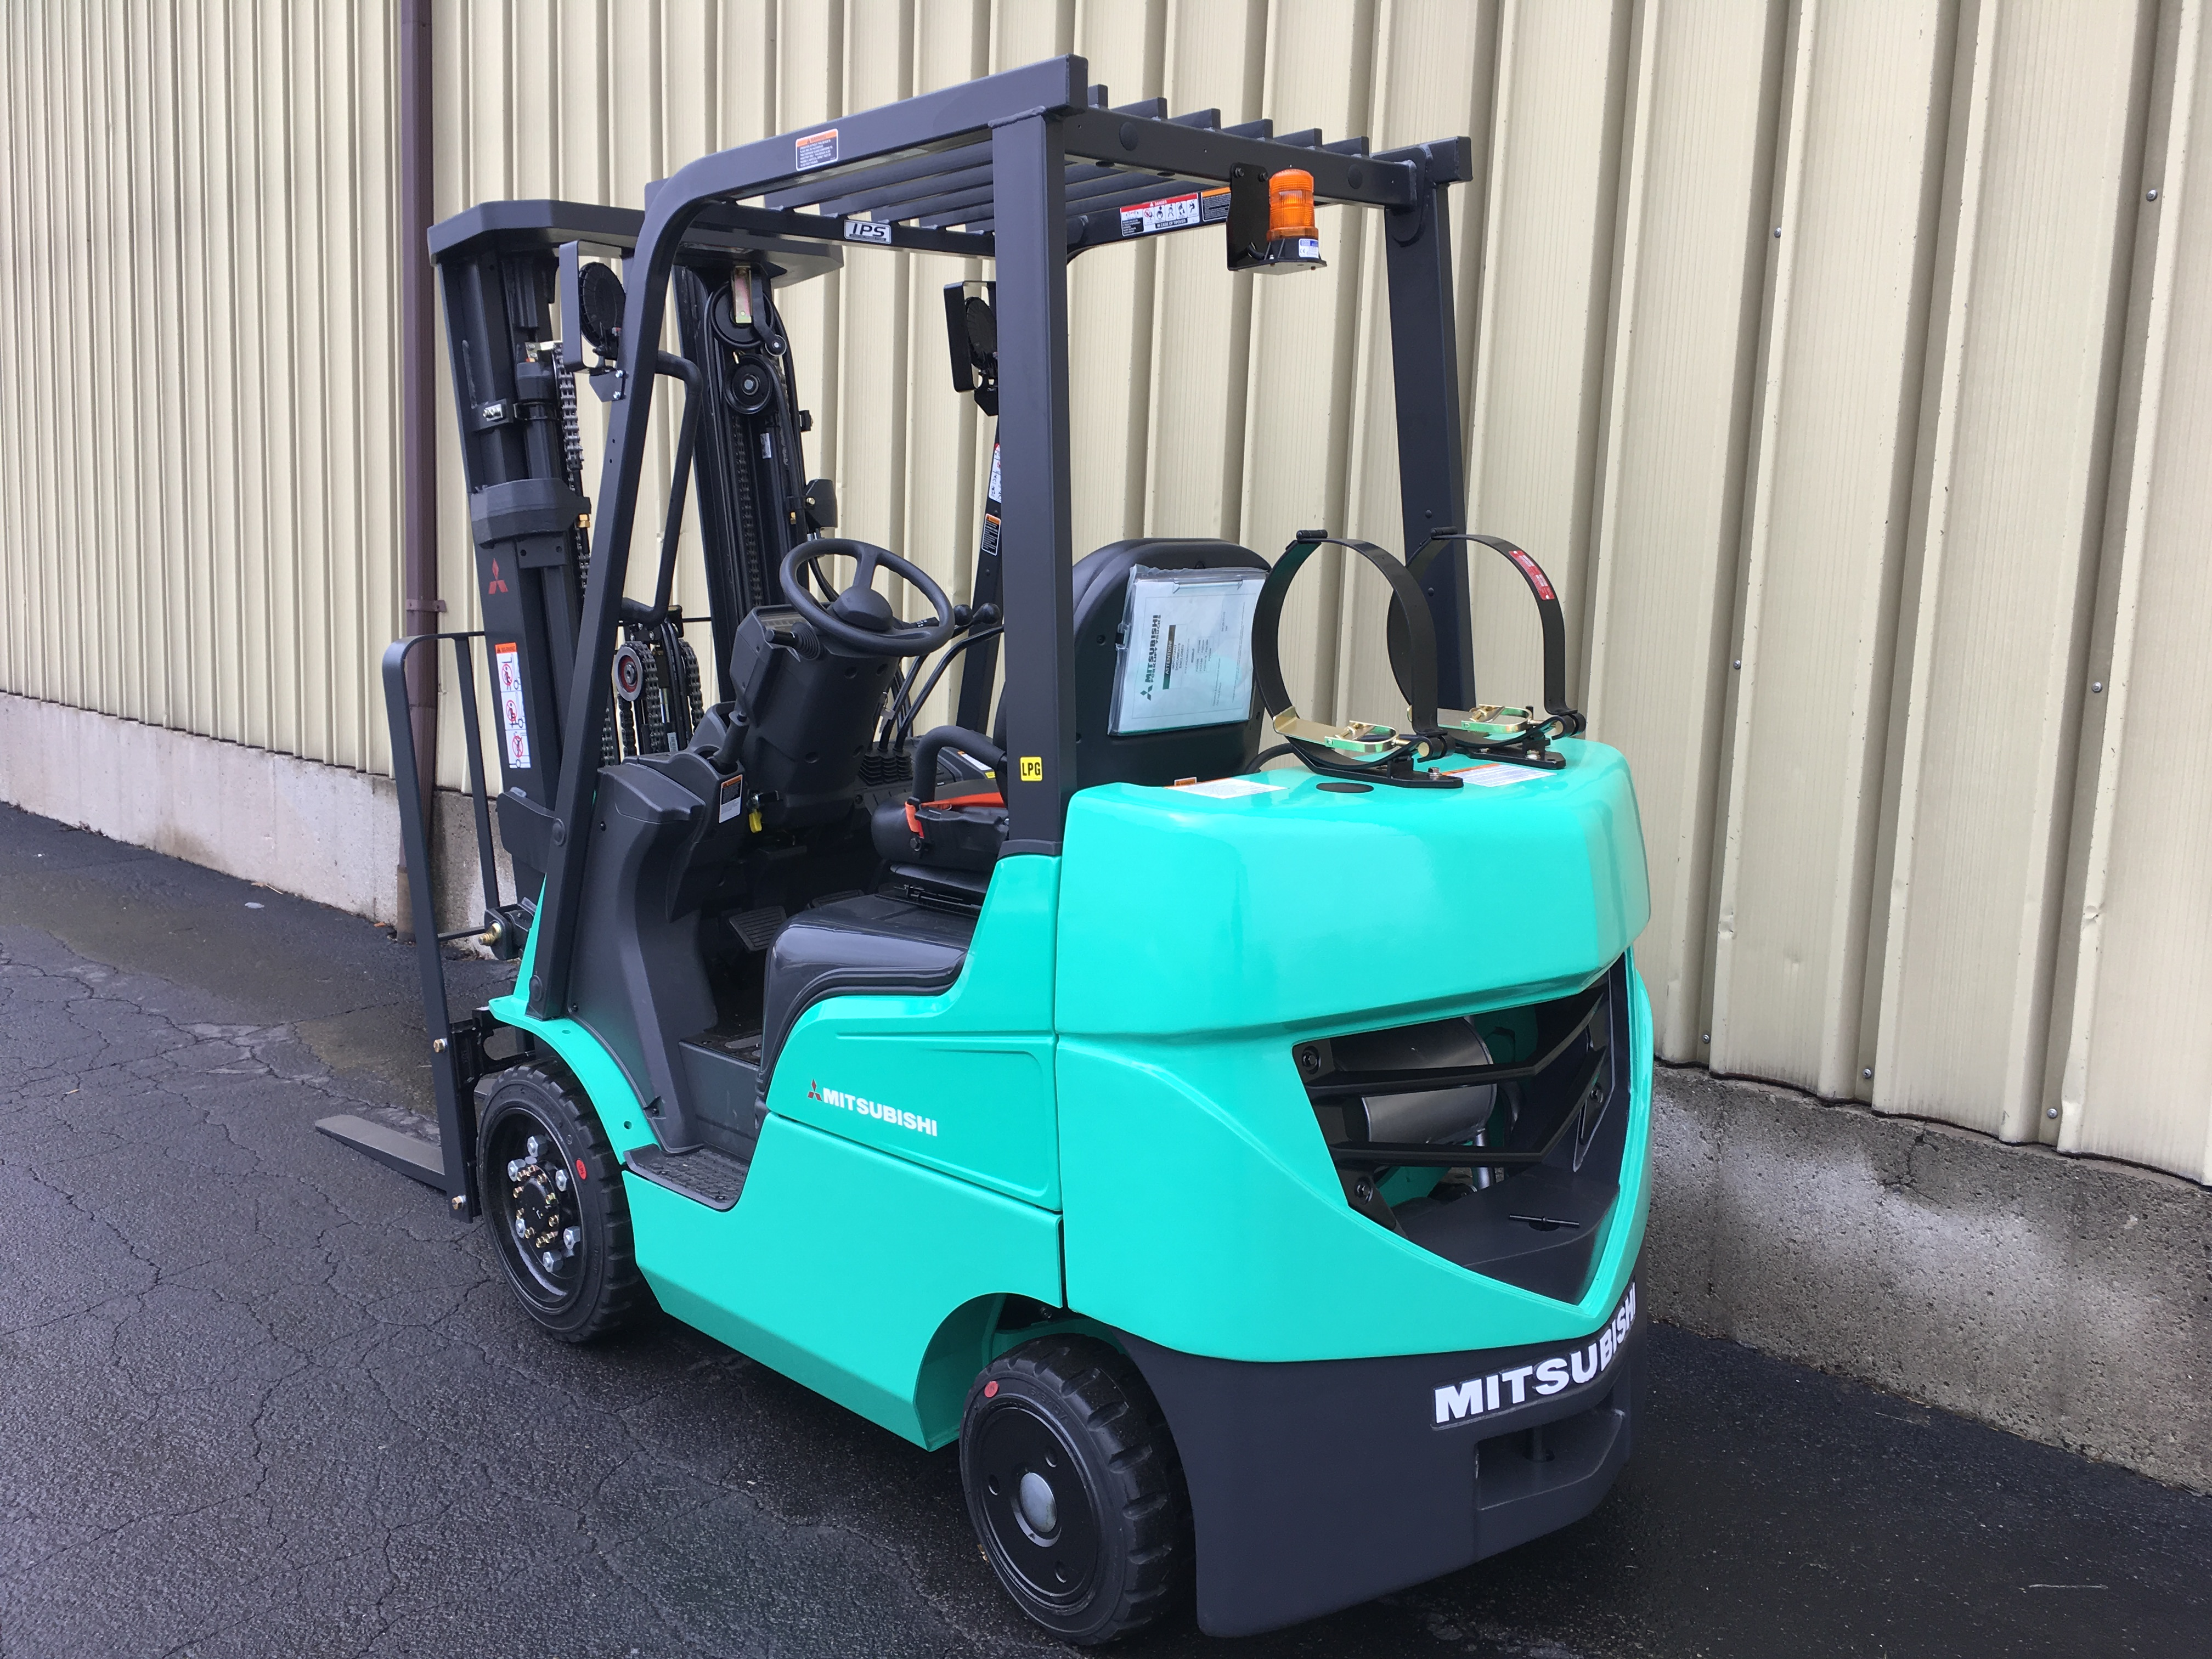 mitsubishi lbs forklift tire products capacity forklifts pneumatic